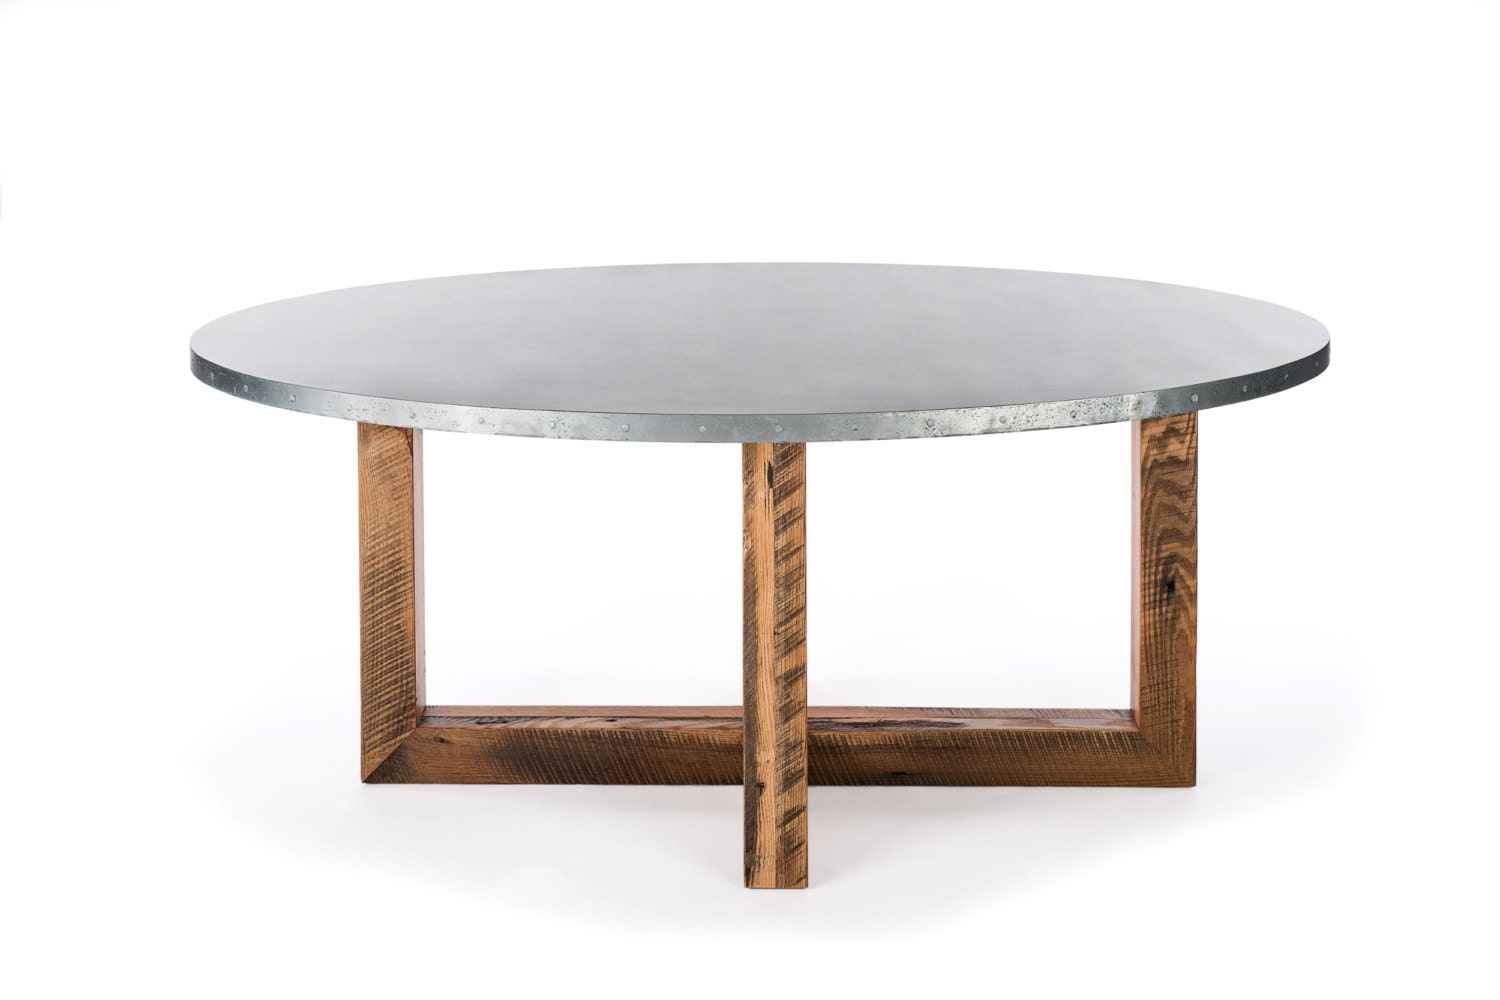 Zinc Table Zinc Dining Table Oval Zinc Top Table : ilfullxfull843377715mcxx from www.etsy.com size 1500 x 1000 jpeg 102kB